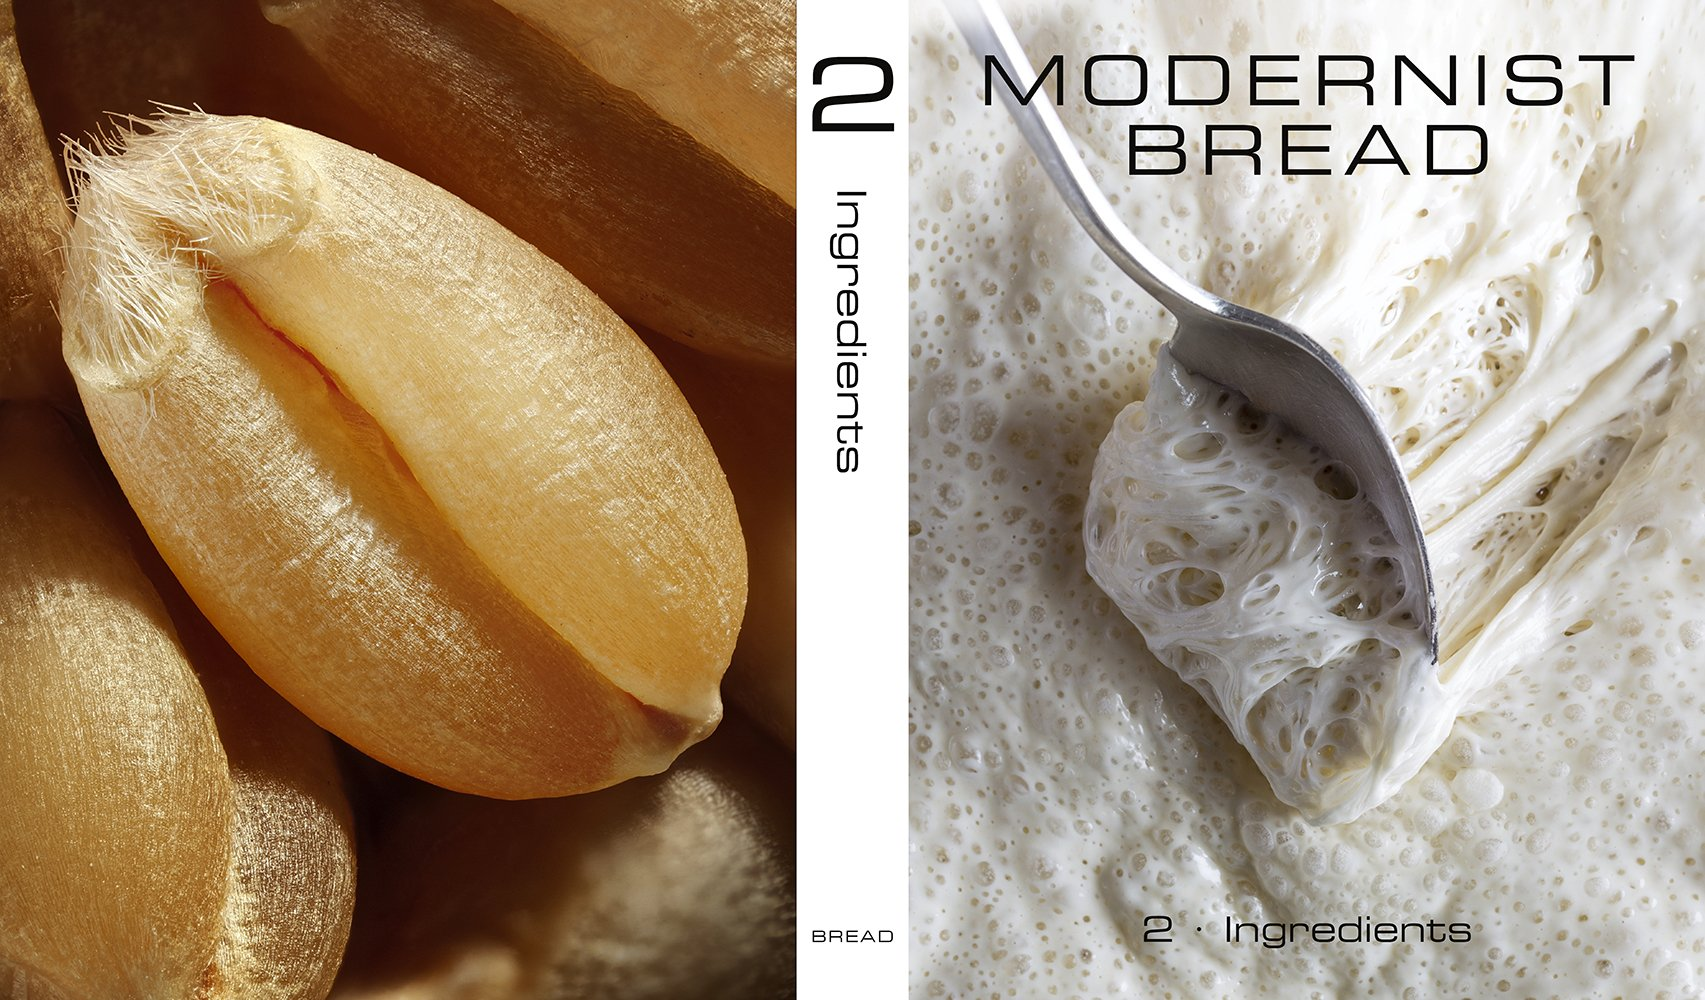 modernist bread the art and science pdf download